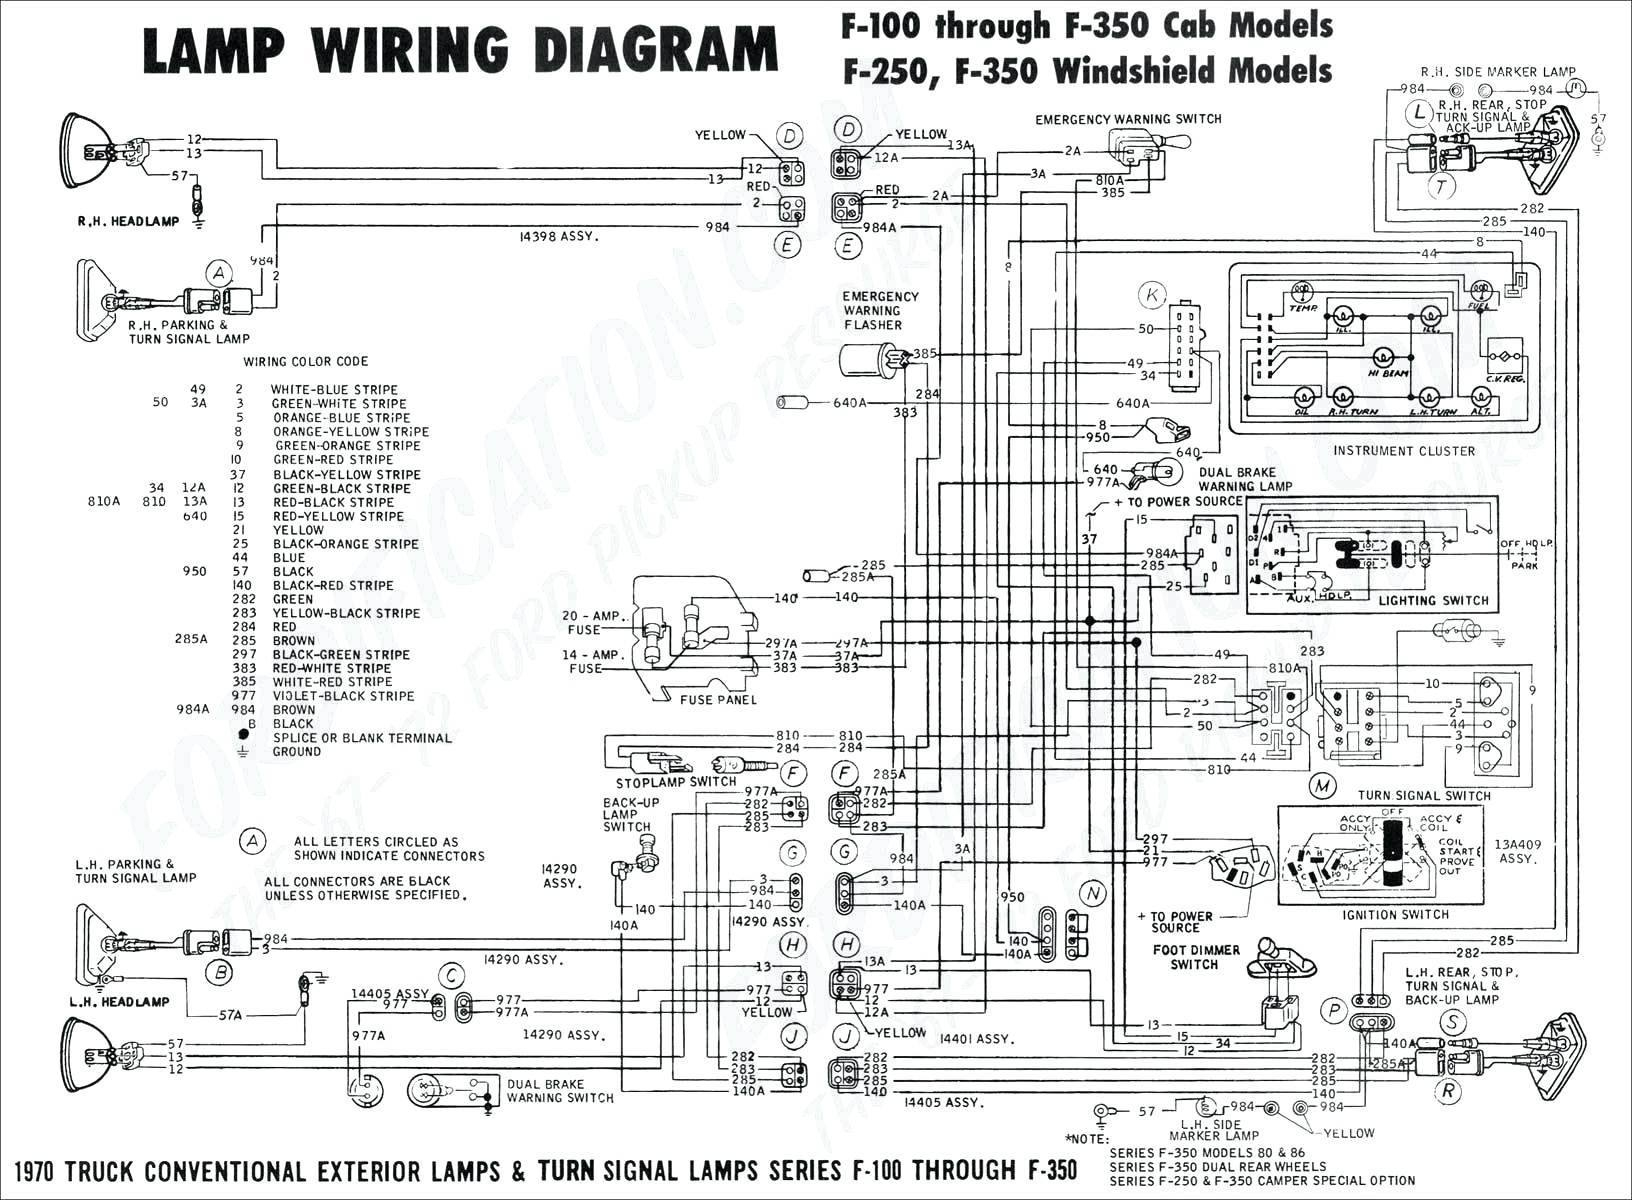 [DIAGRAM] 1999 Chevy Silverado Light Wiring Diagram FULL